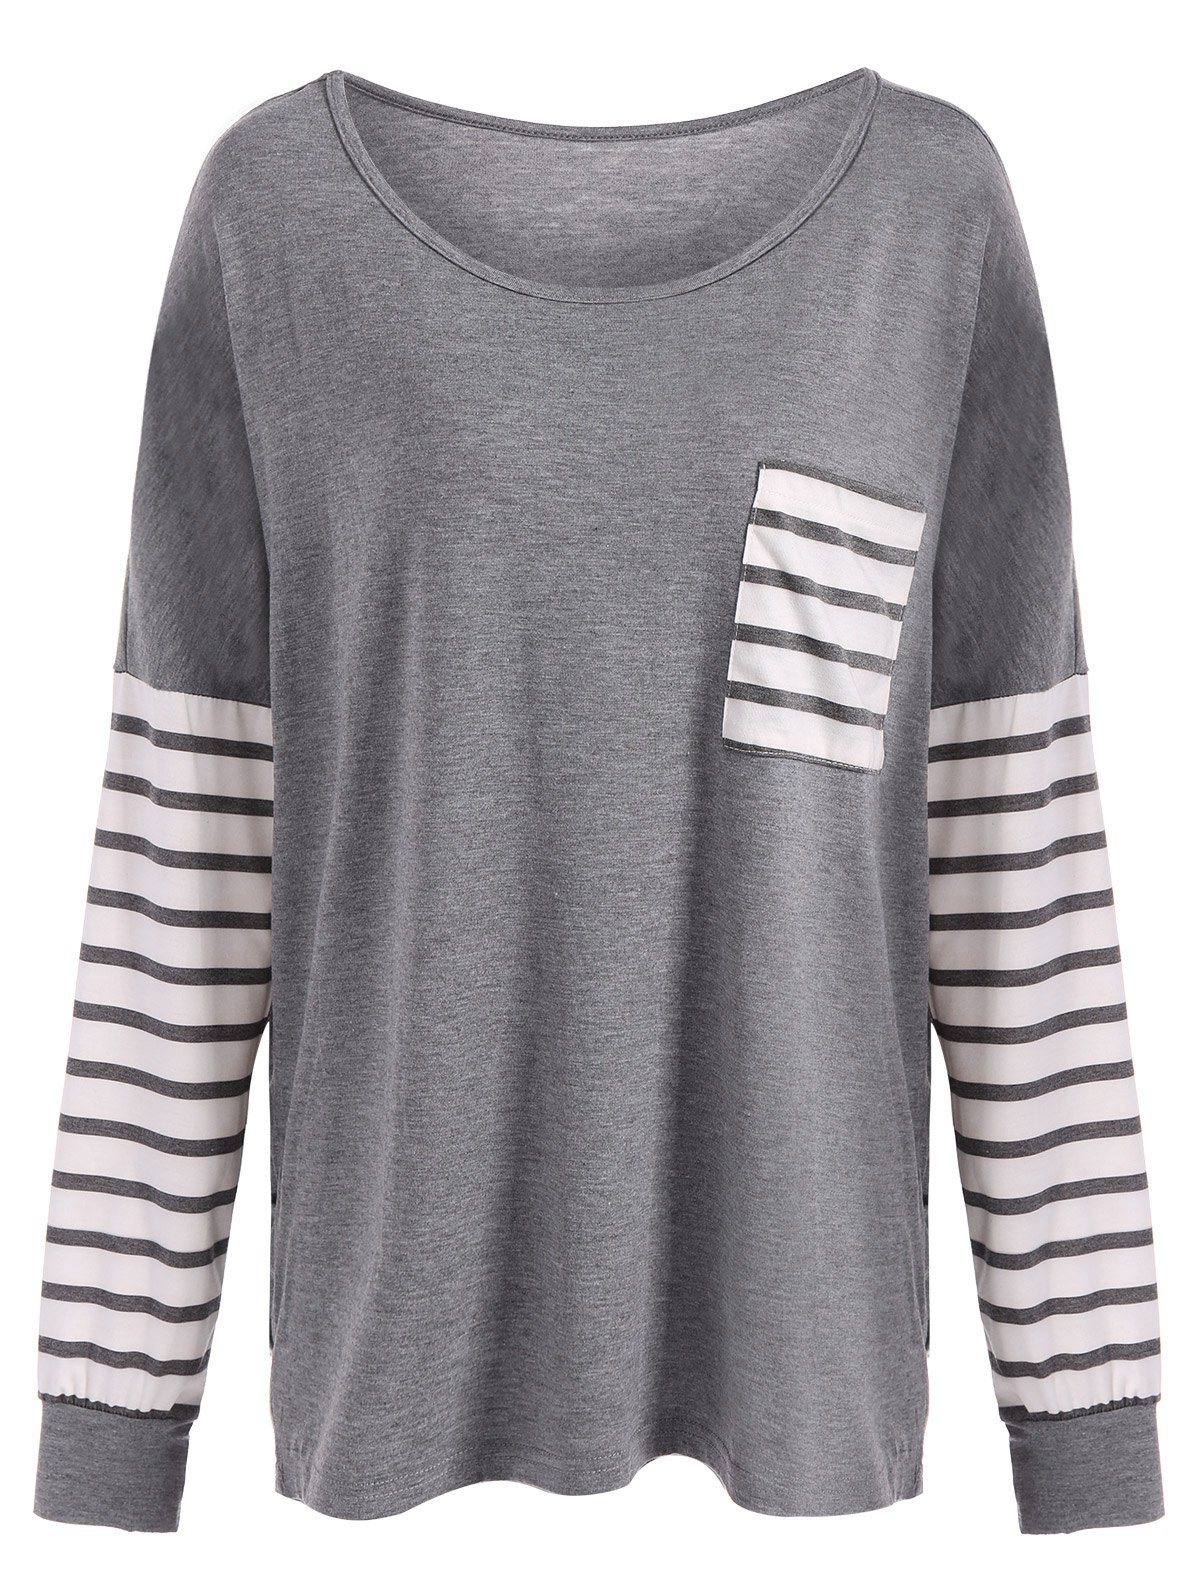 Drop Shoulder Stripe Pocket T-Shirt - GRAY S